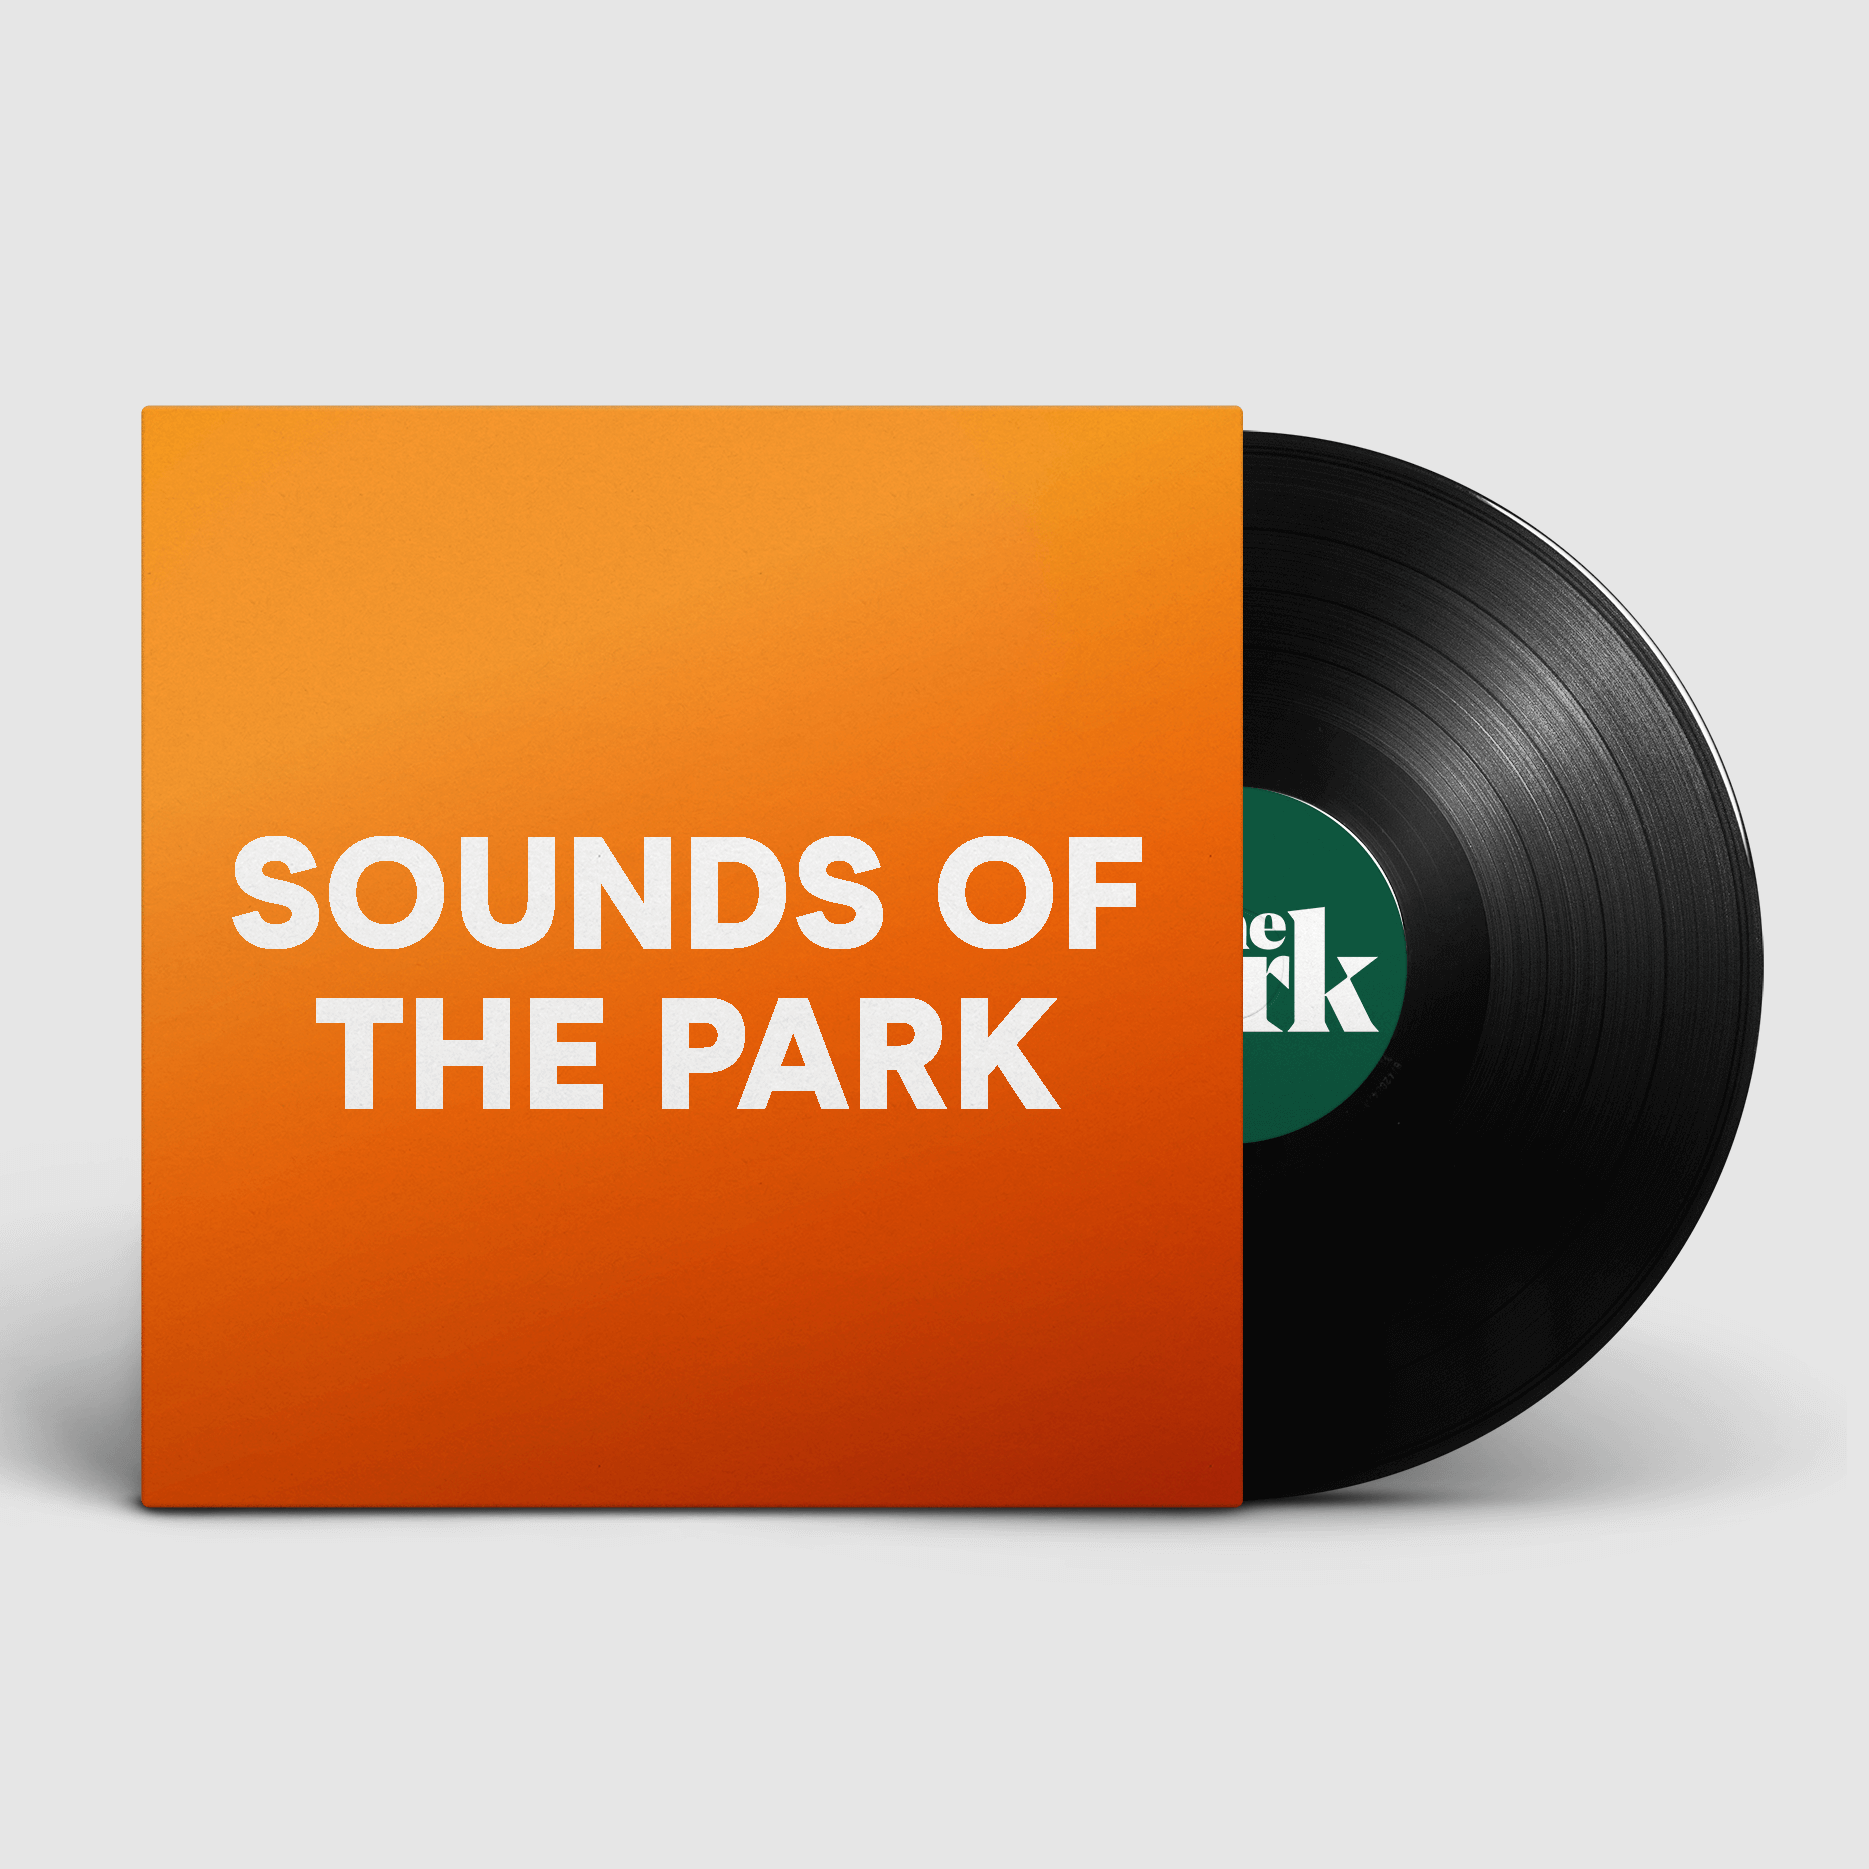 The sounds of the park on spotify